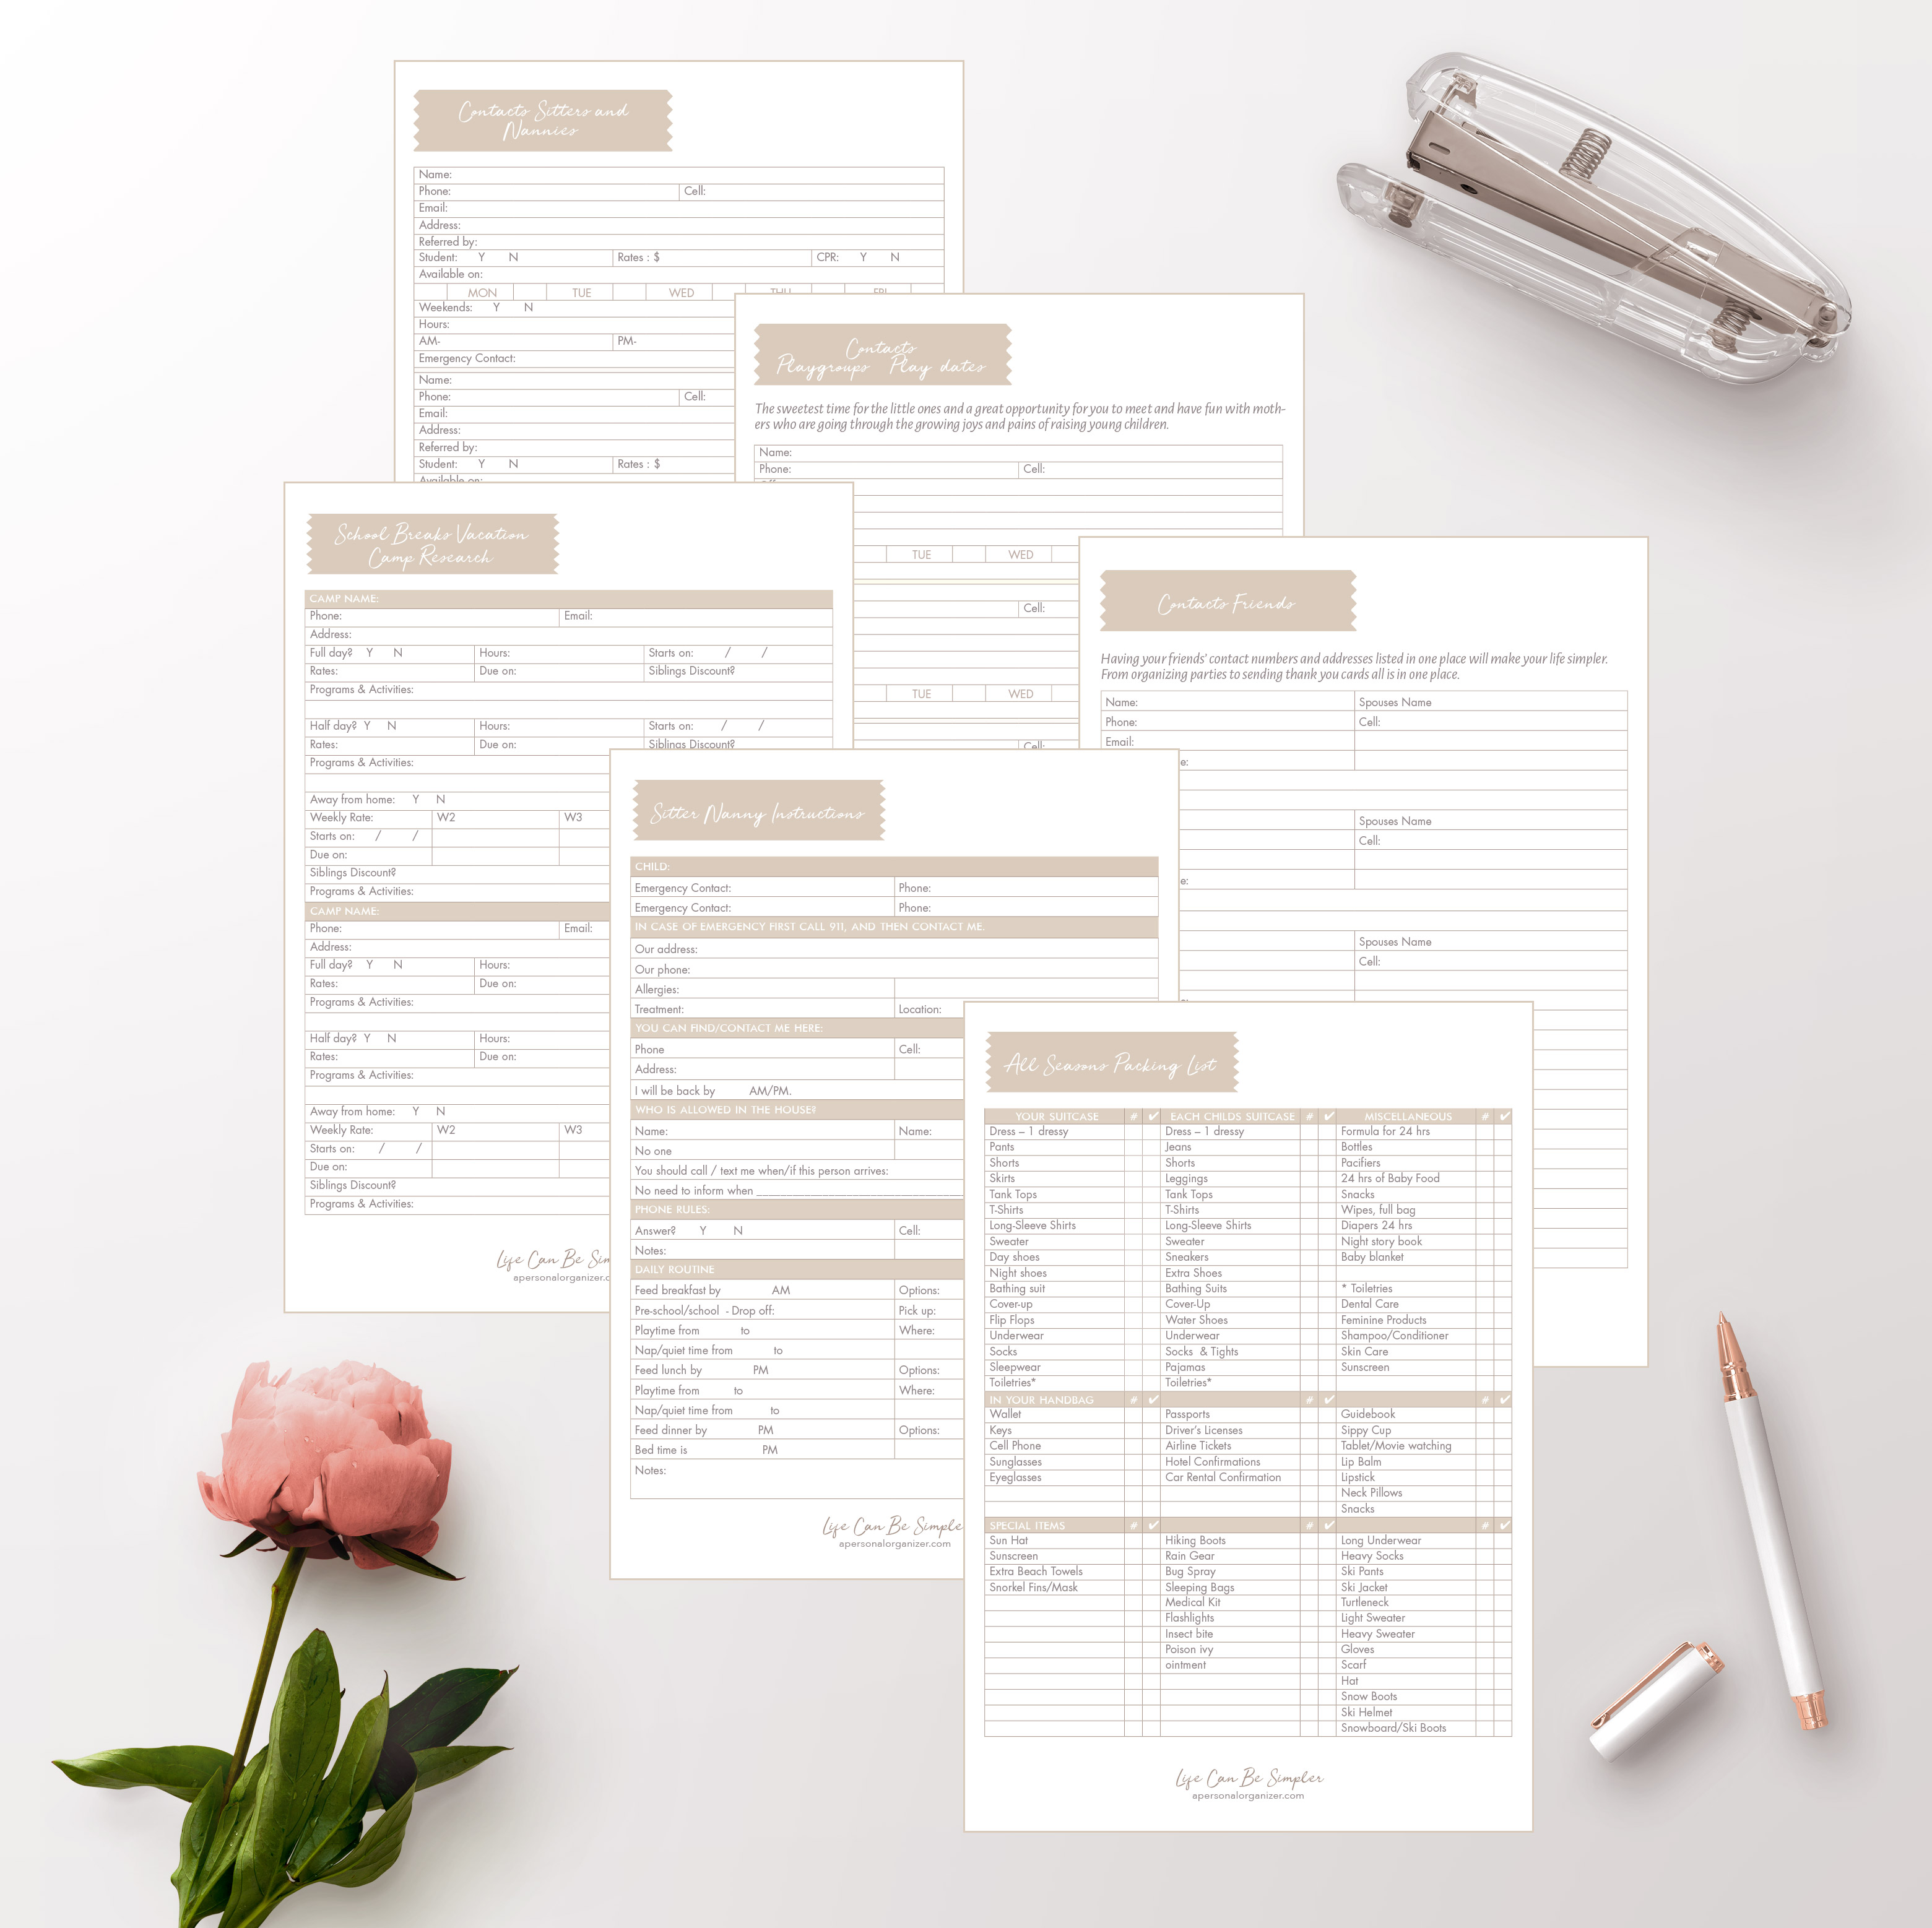 The Home Binder & Family Planner